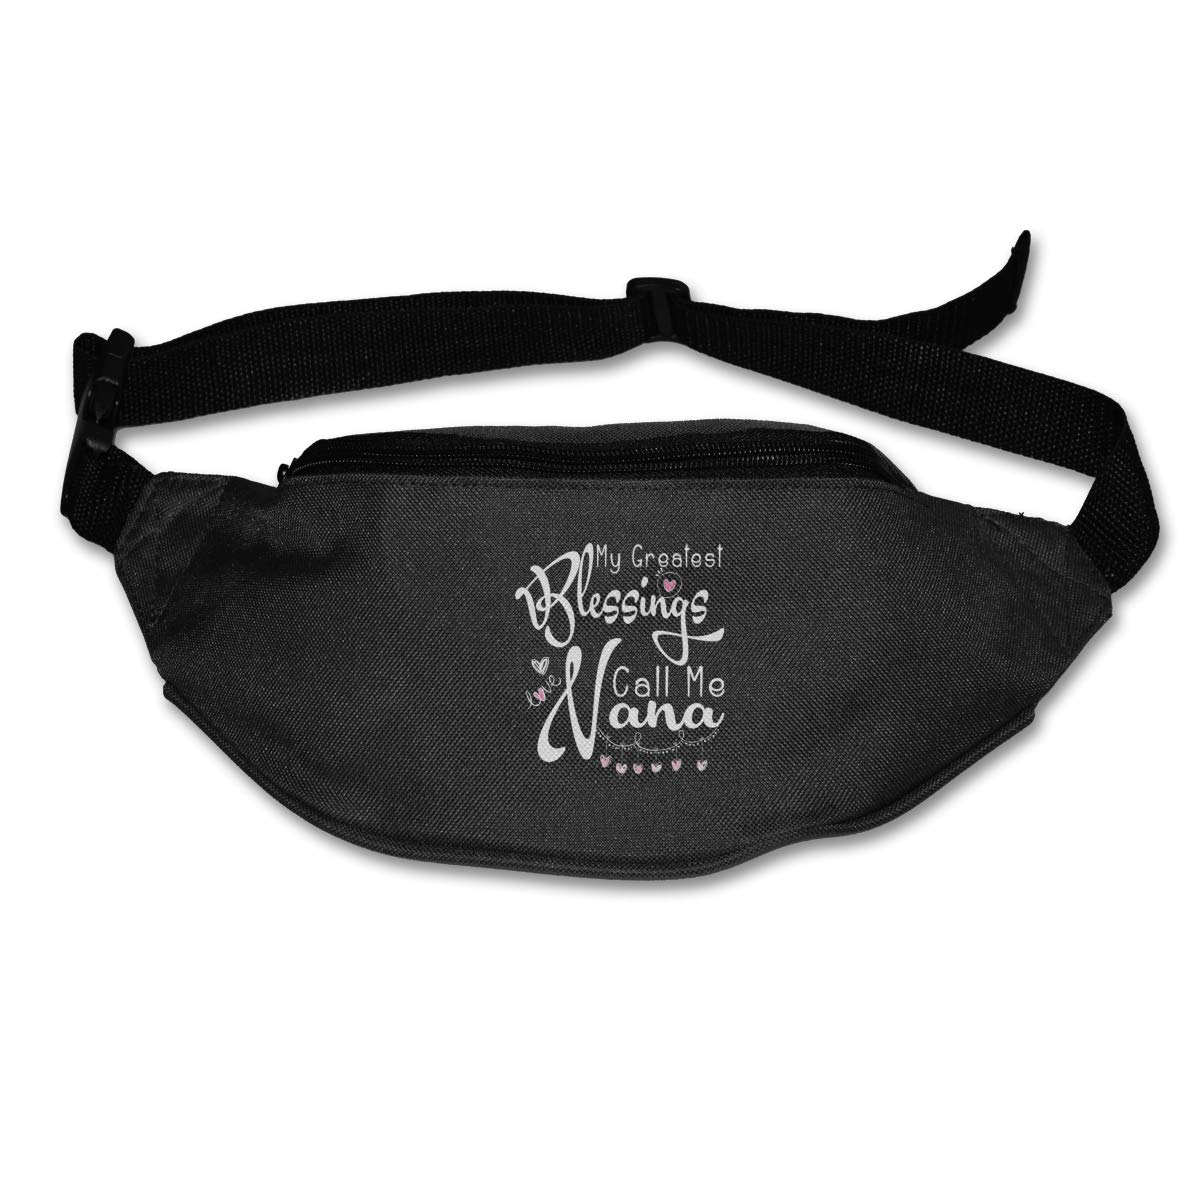 My Greatest Blessings Call Me Nana Waist Bag Fanny Pack Adjustable For Run